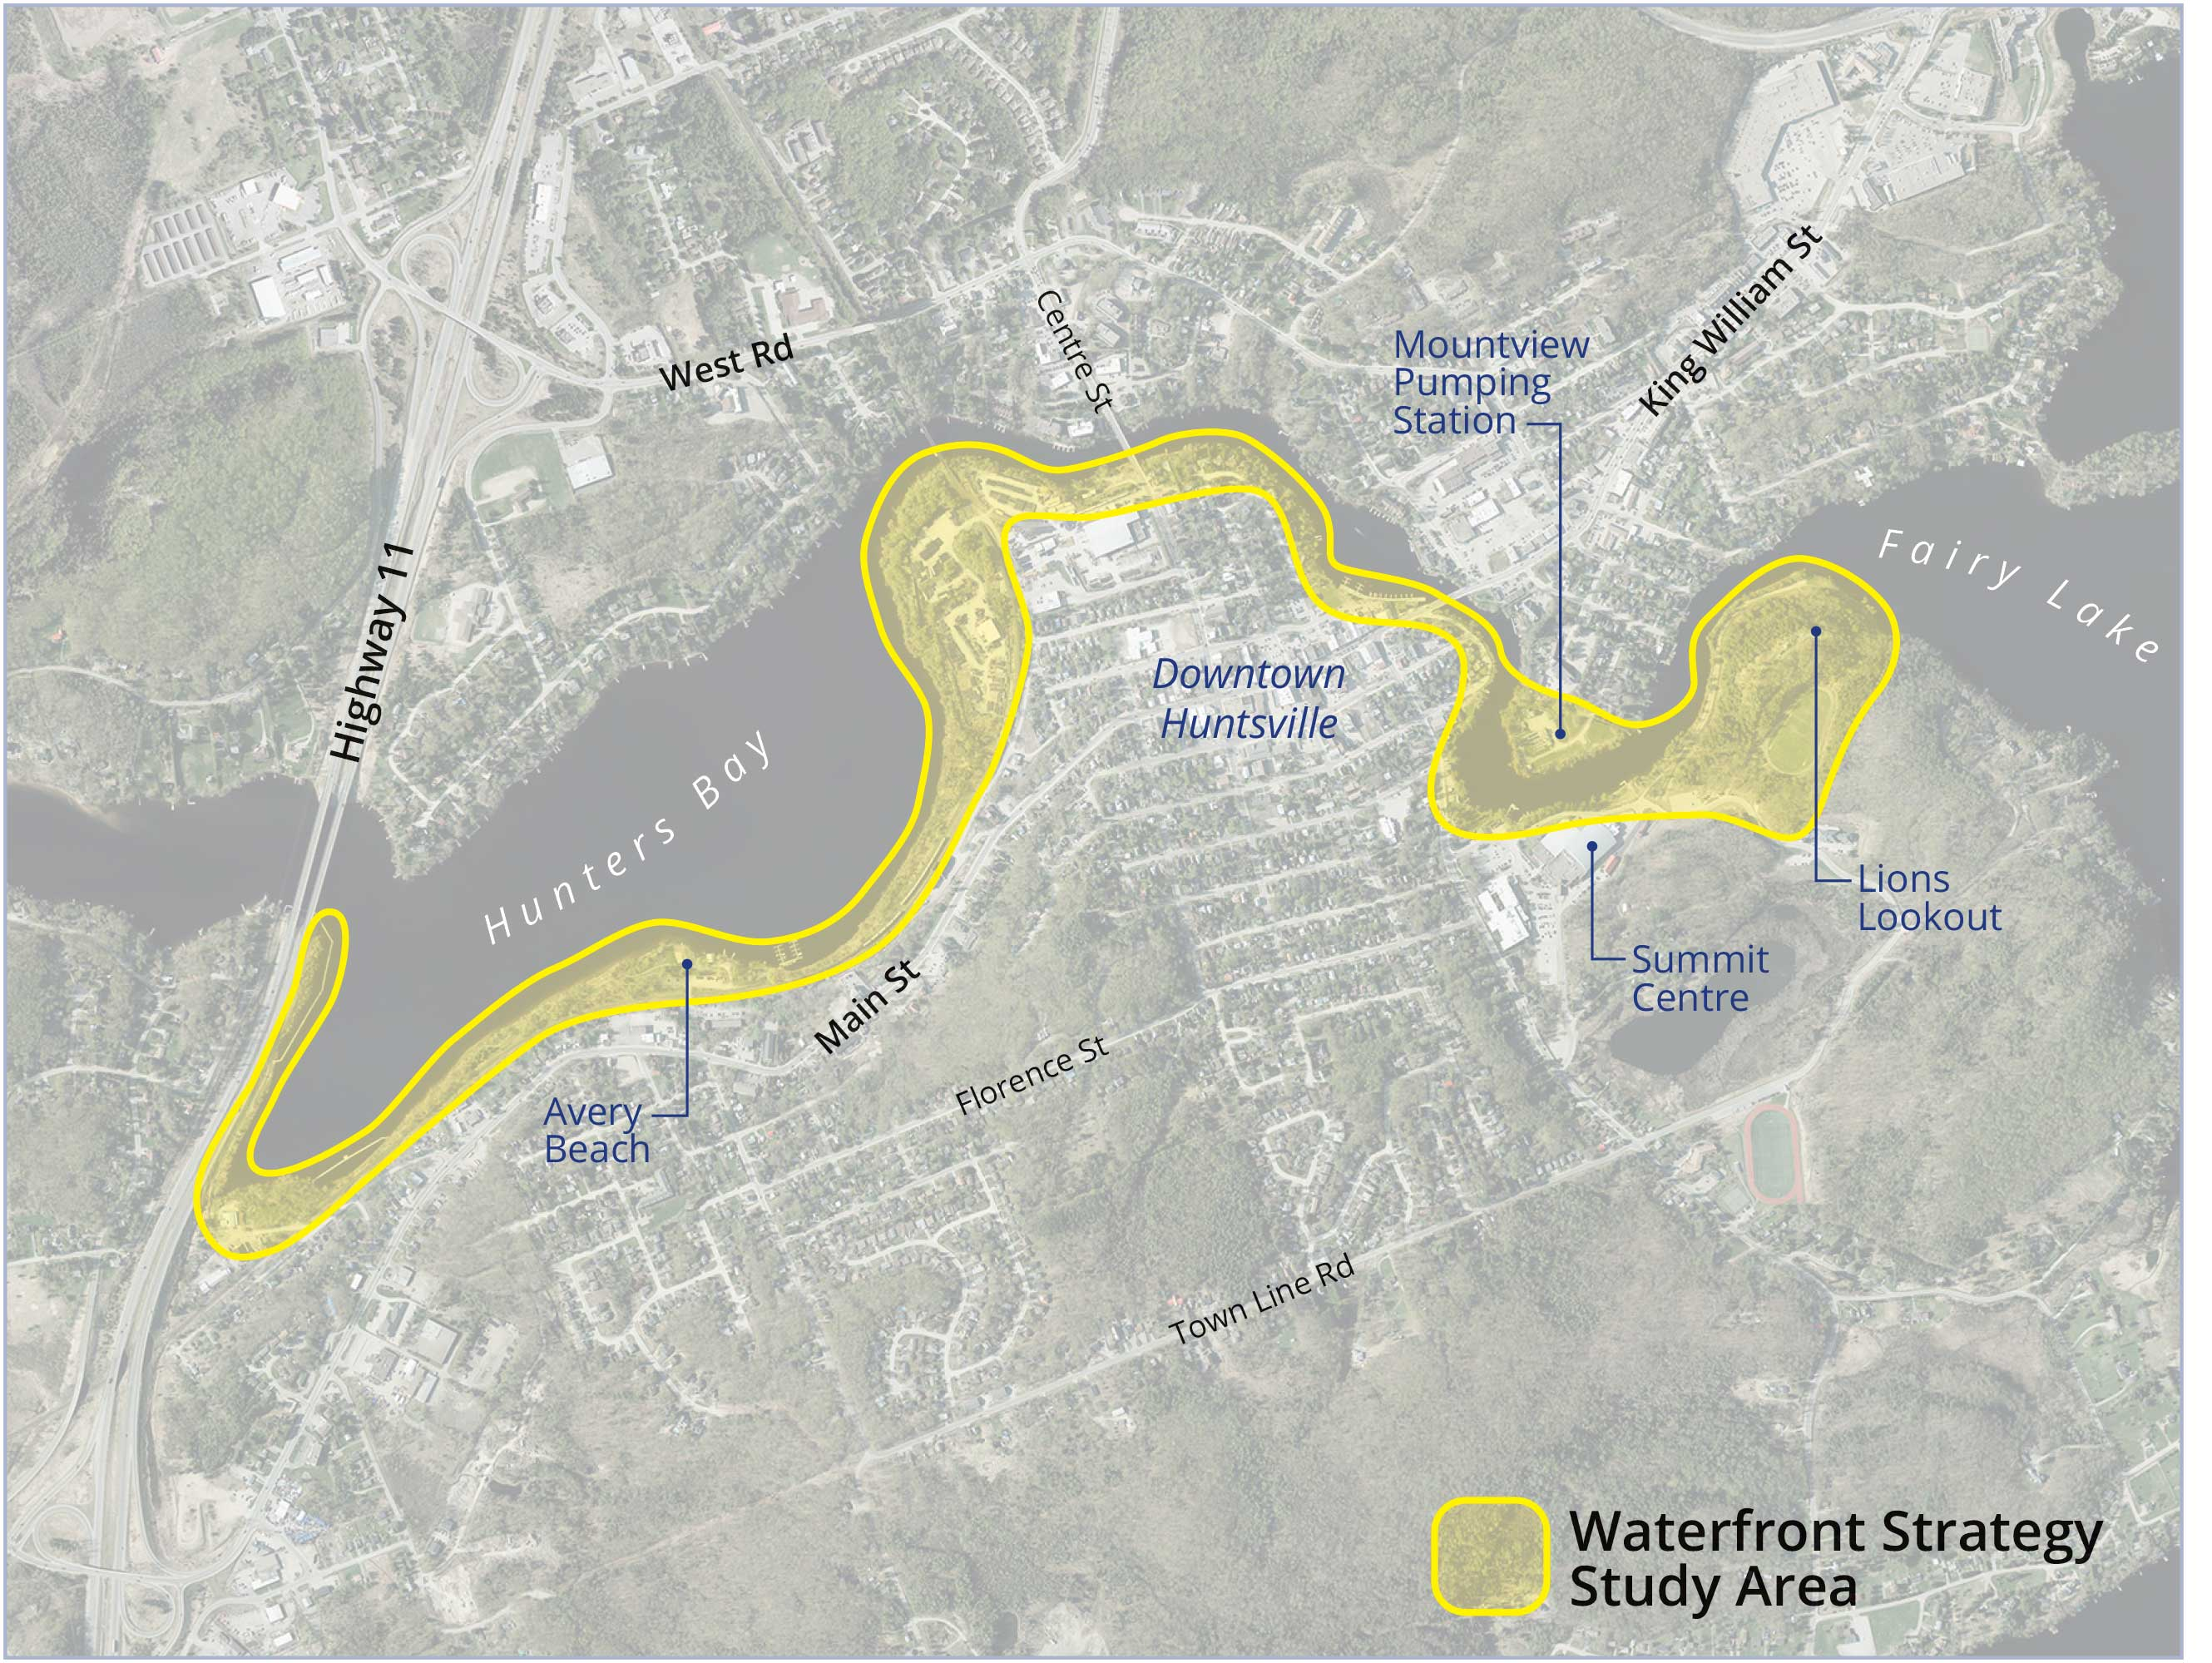 Image of the Waterfront Strategy Study Area